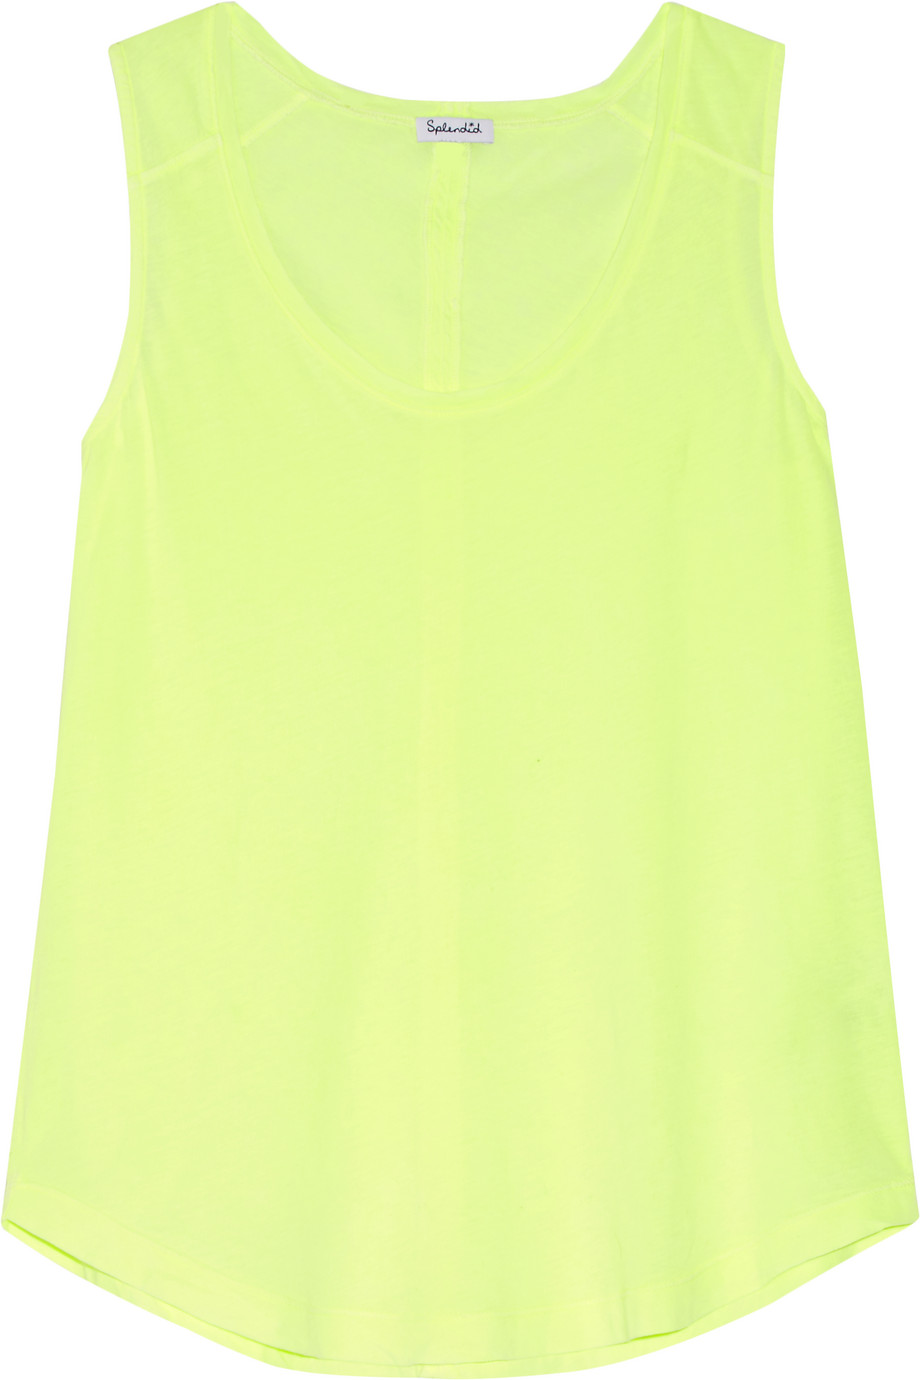 Splendid Supima Cotton Tank, Bright Yellow, Women's, Size: XS